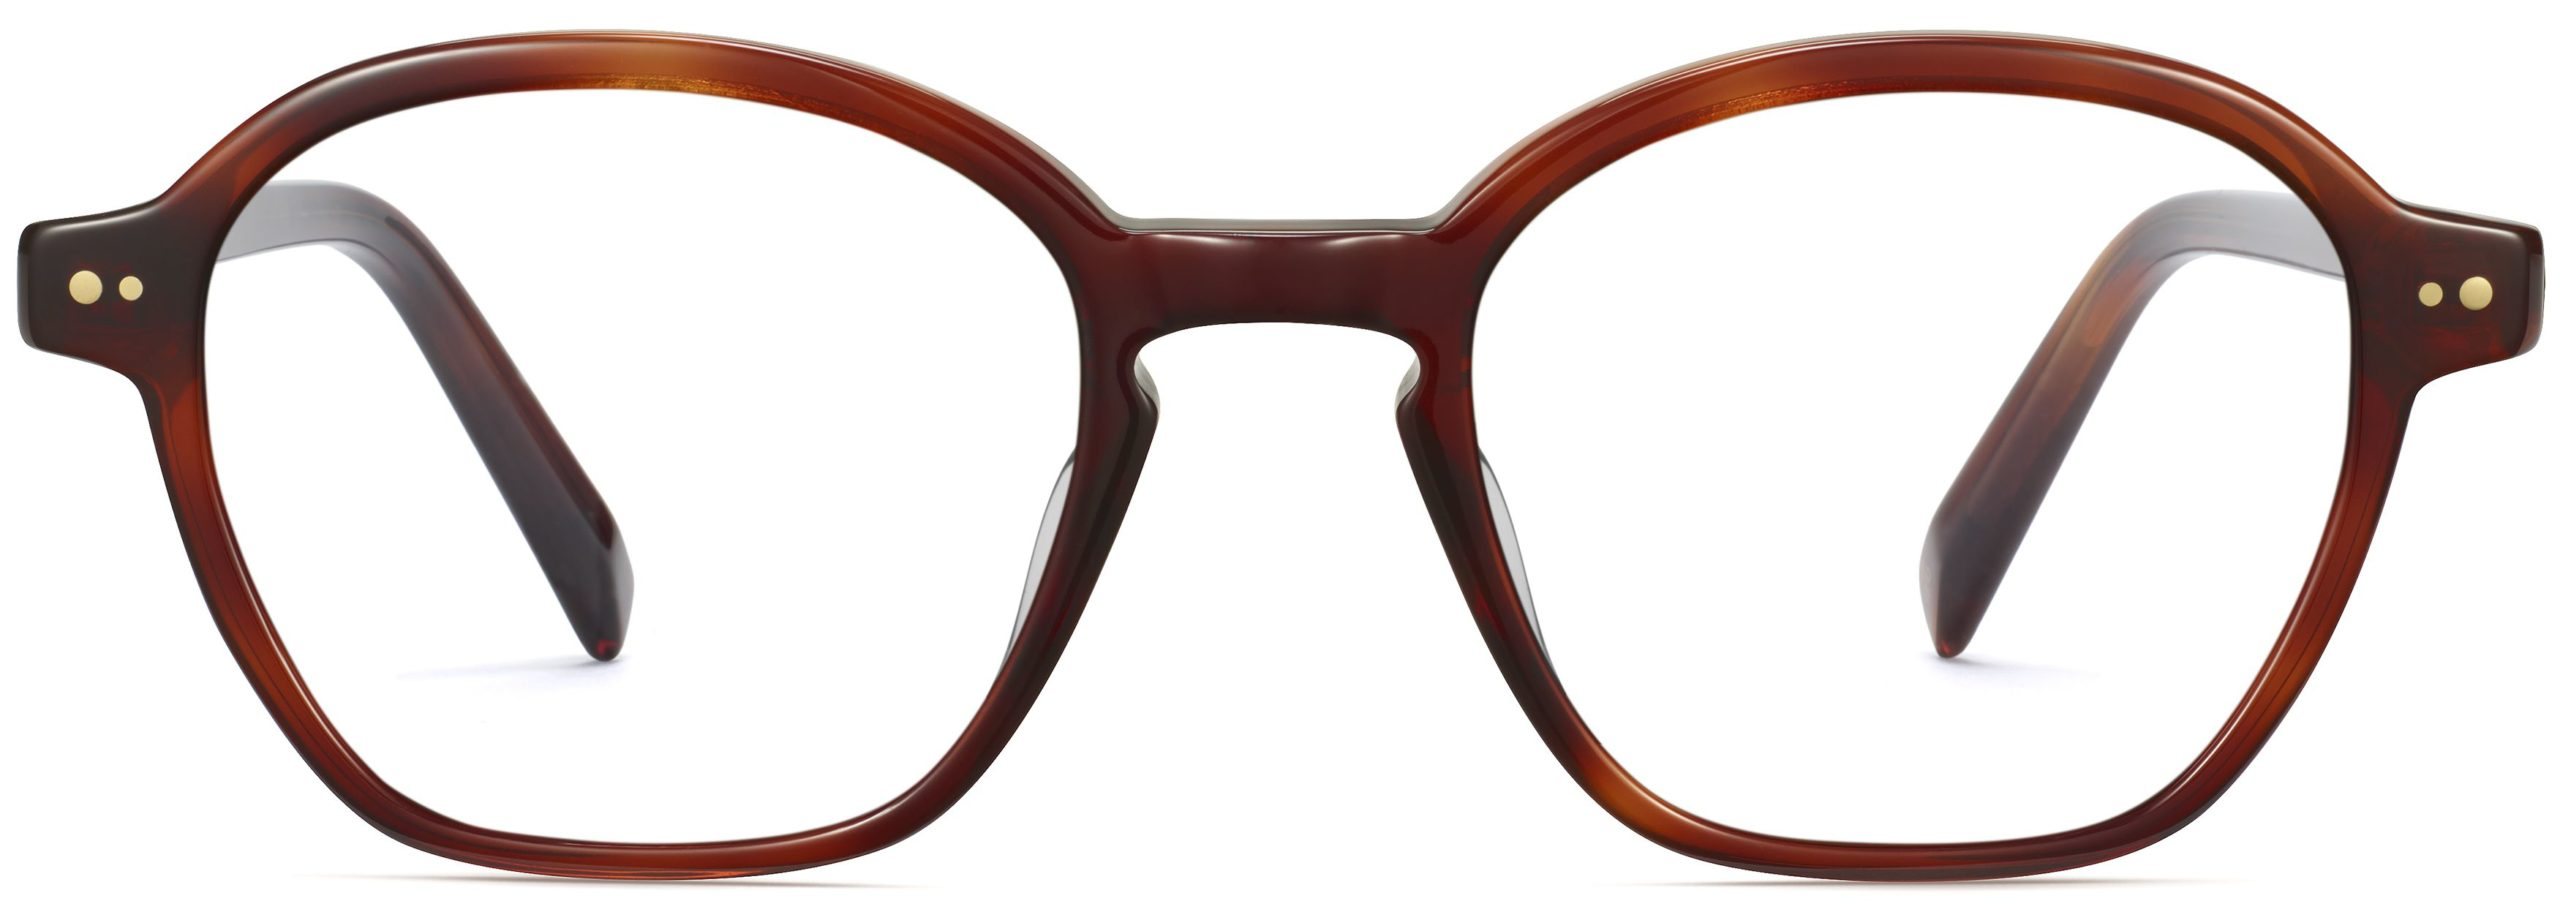 Front View Image of Britten Eyeglasses Collection, by Warby Parker Brand, in Amber Tortoise Color